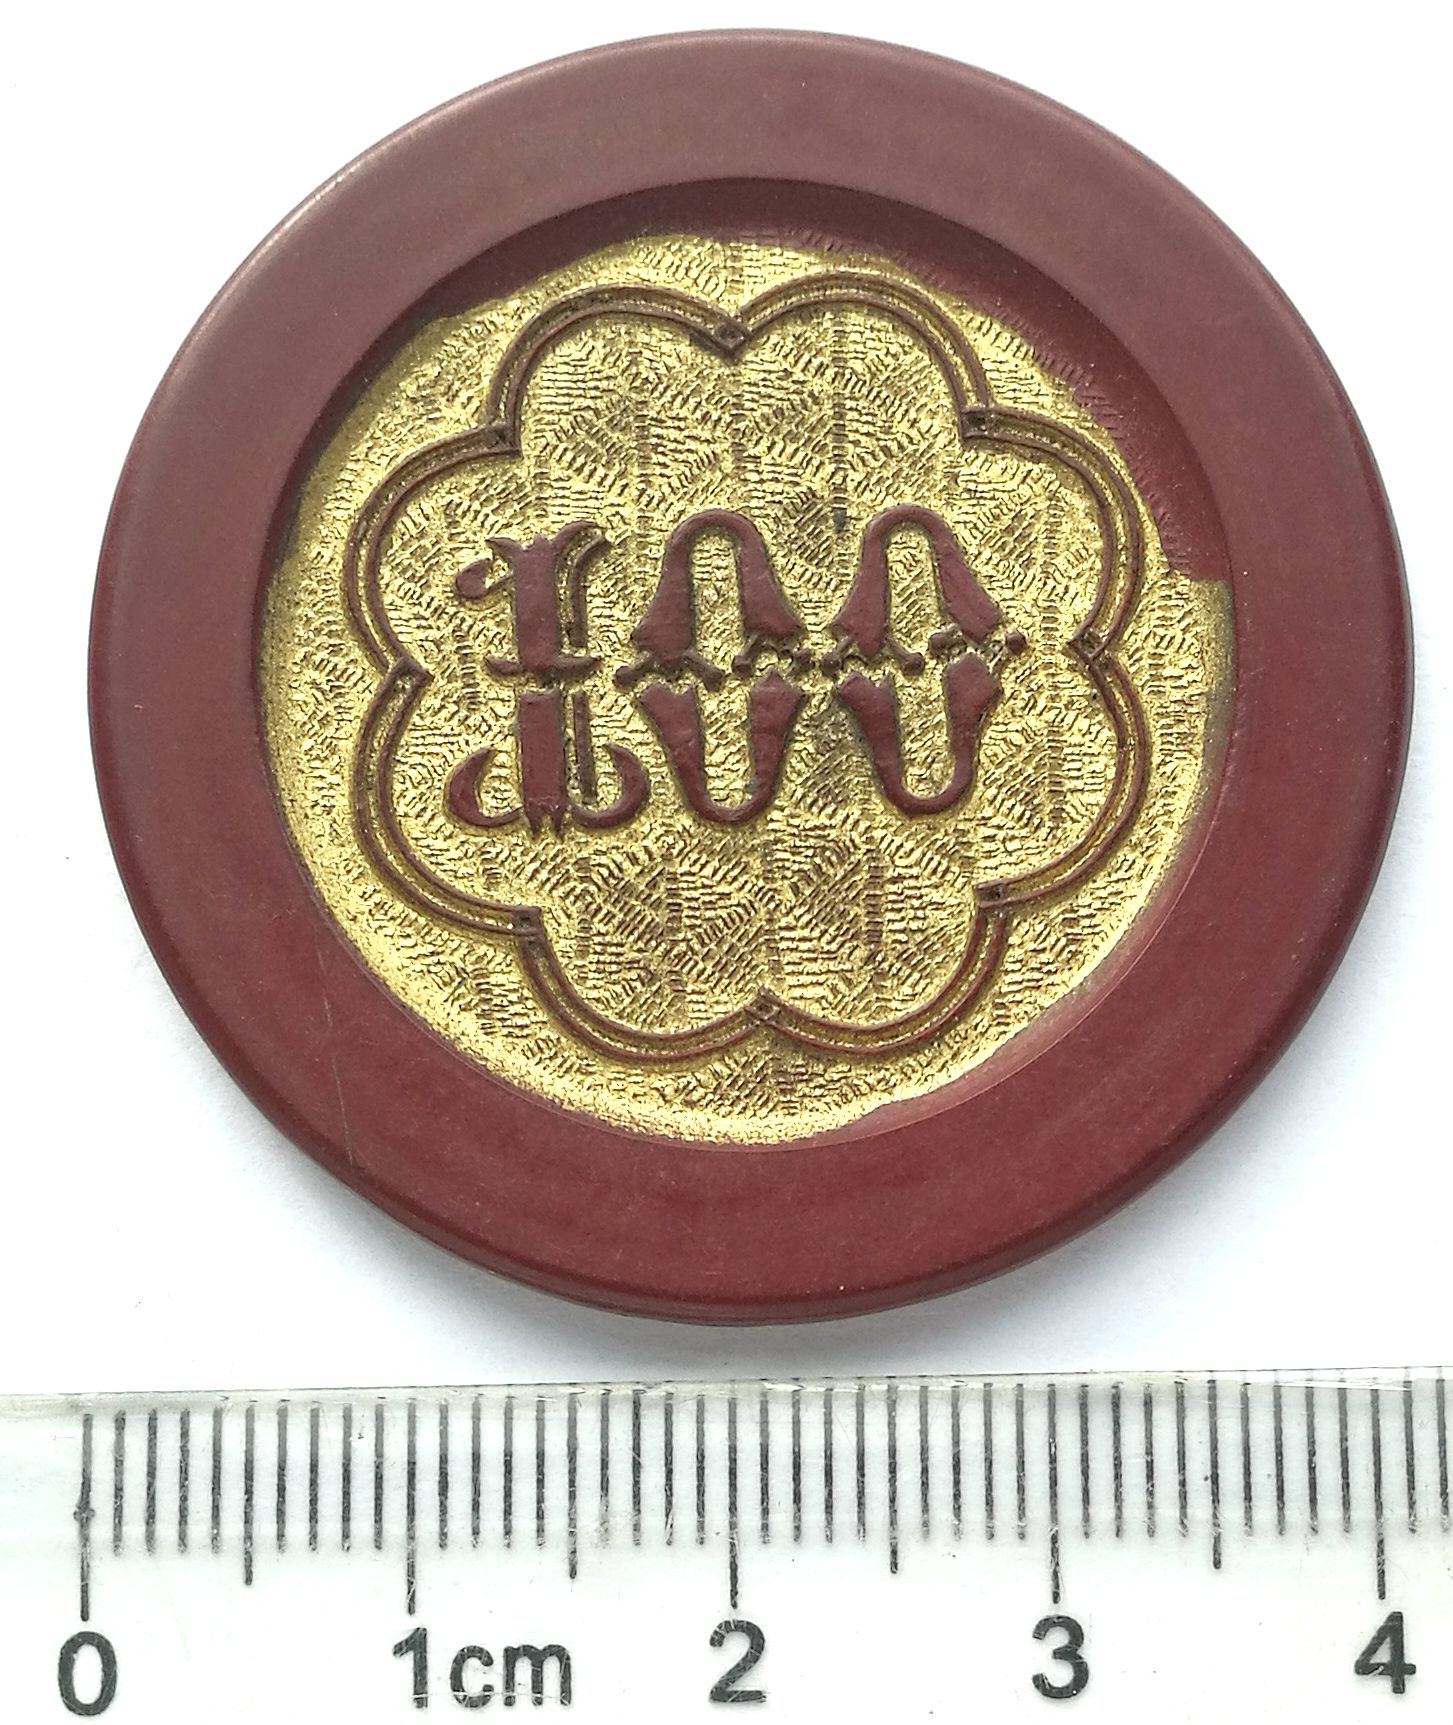 BT627, Shanghai Casino Token 100 Dollars, Two Colors Small, (Bakelite) 1930's